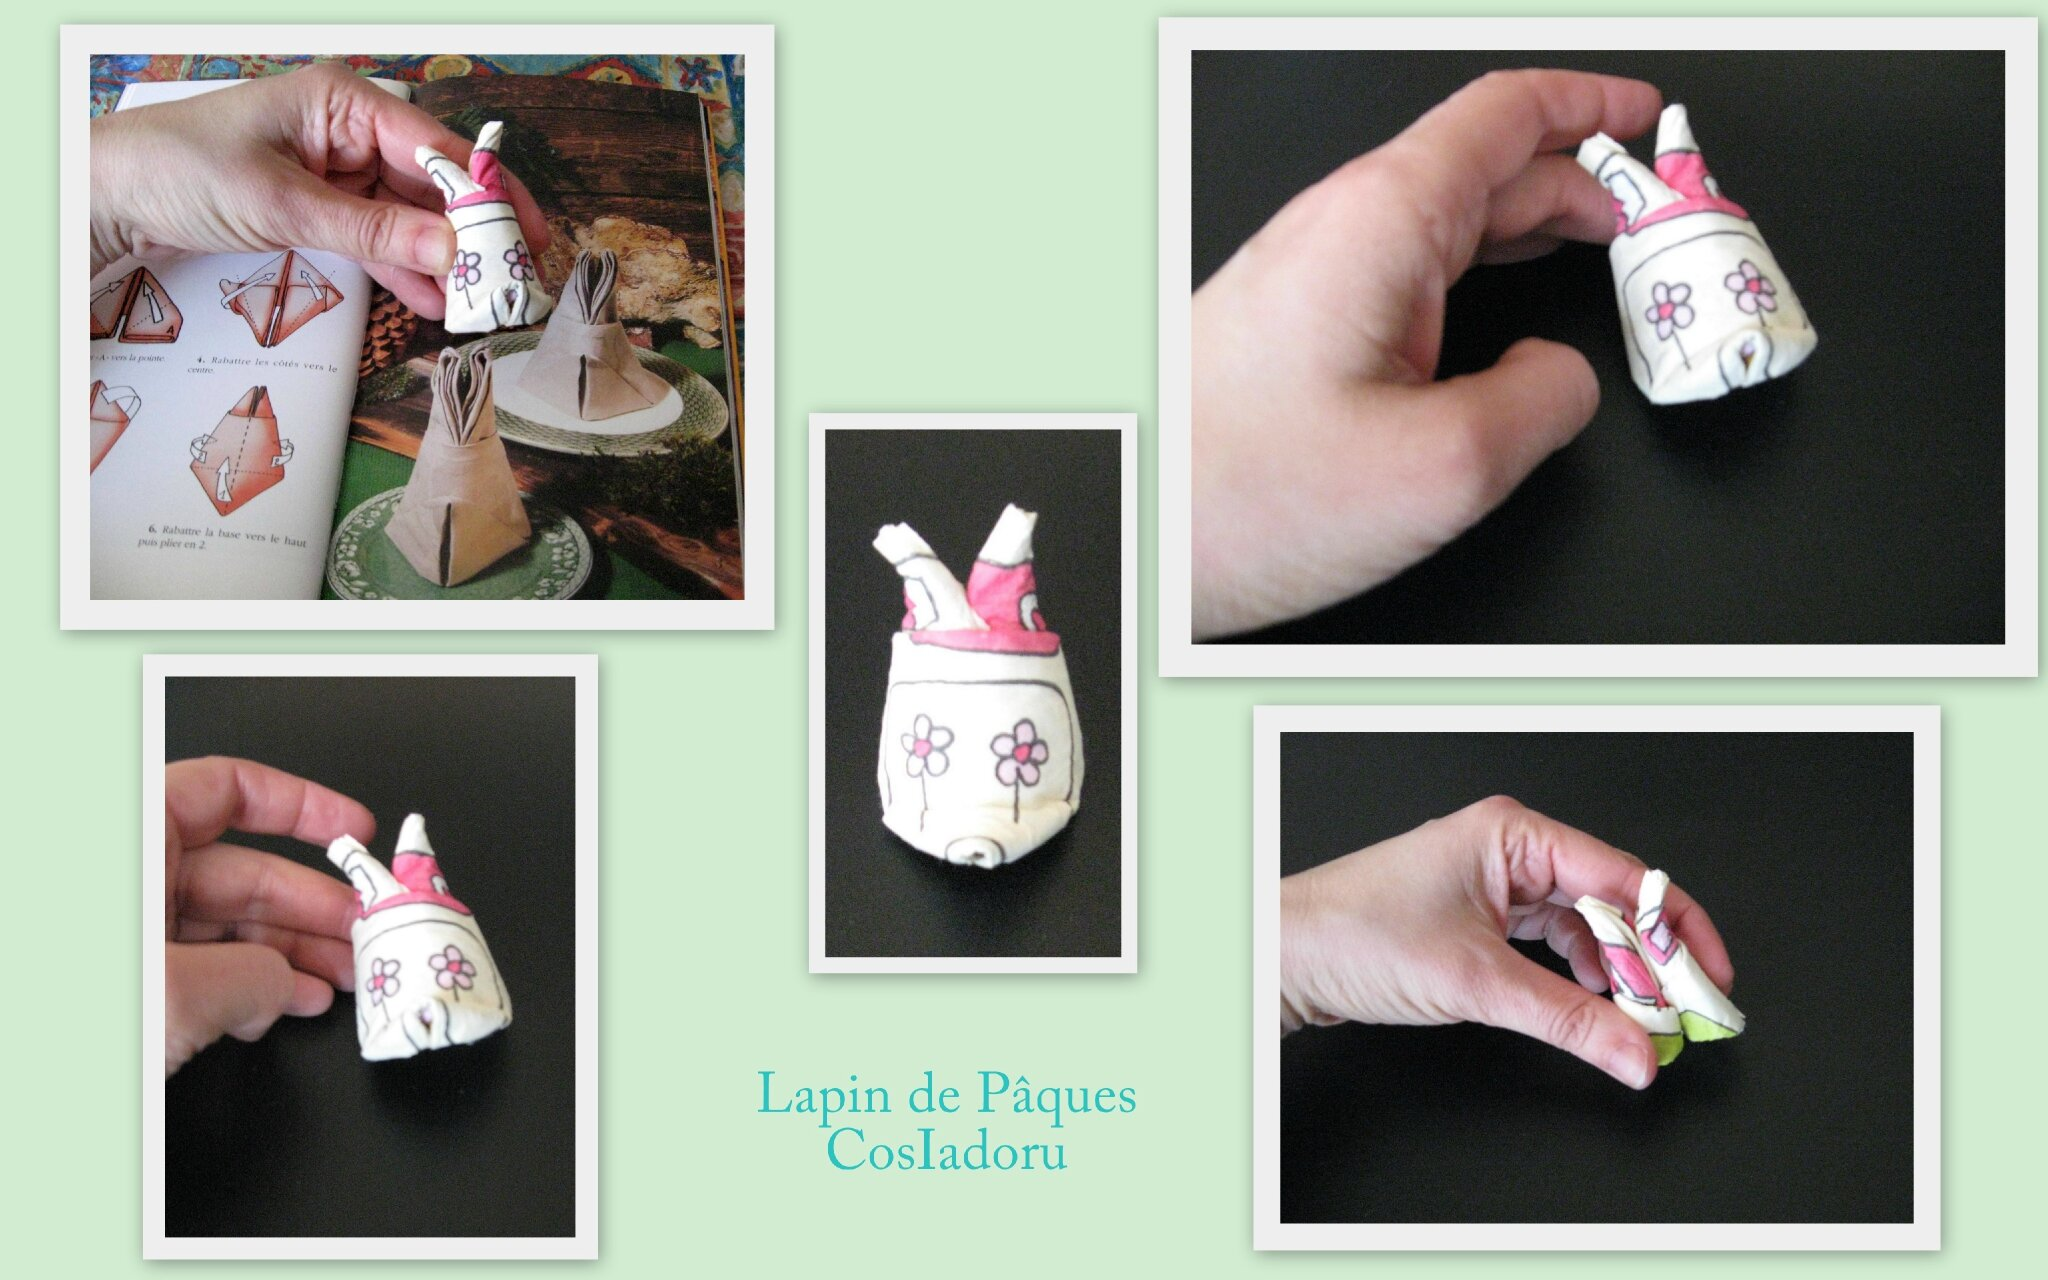 Pliage Serviette Chaussures De Lutin Latest Good Pliage De Serviettes Lapin De Pques With